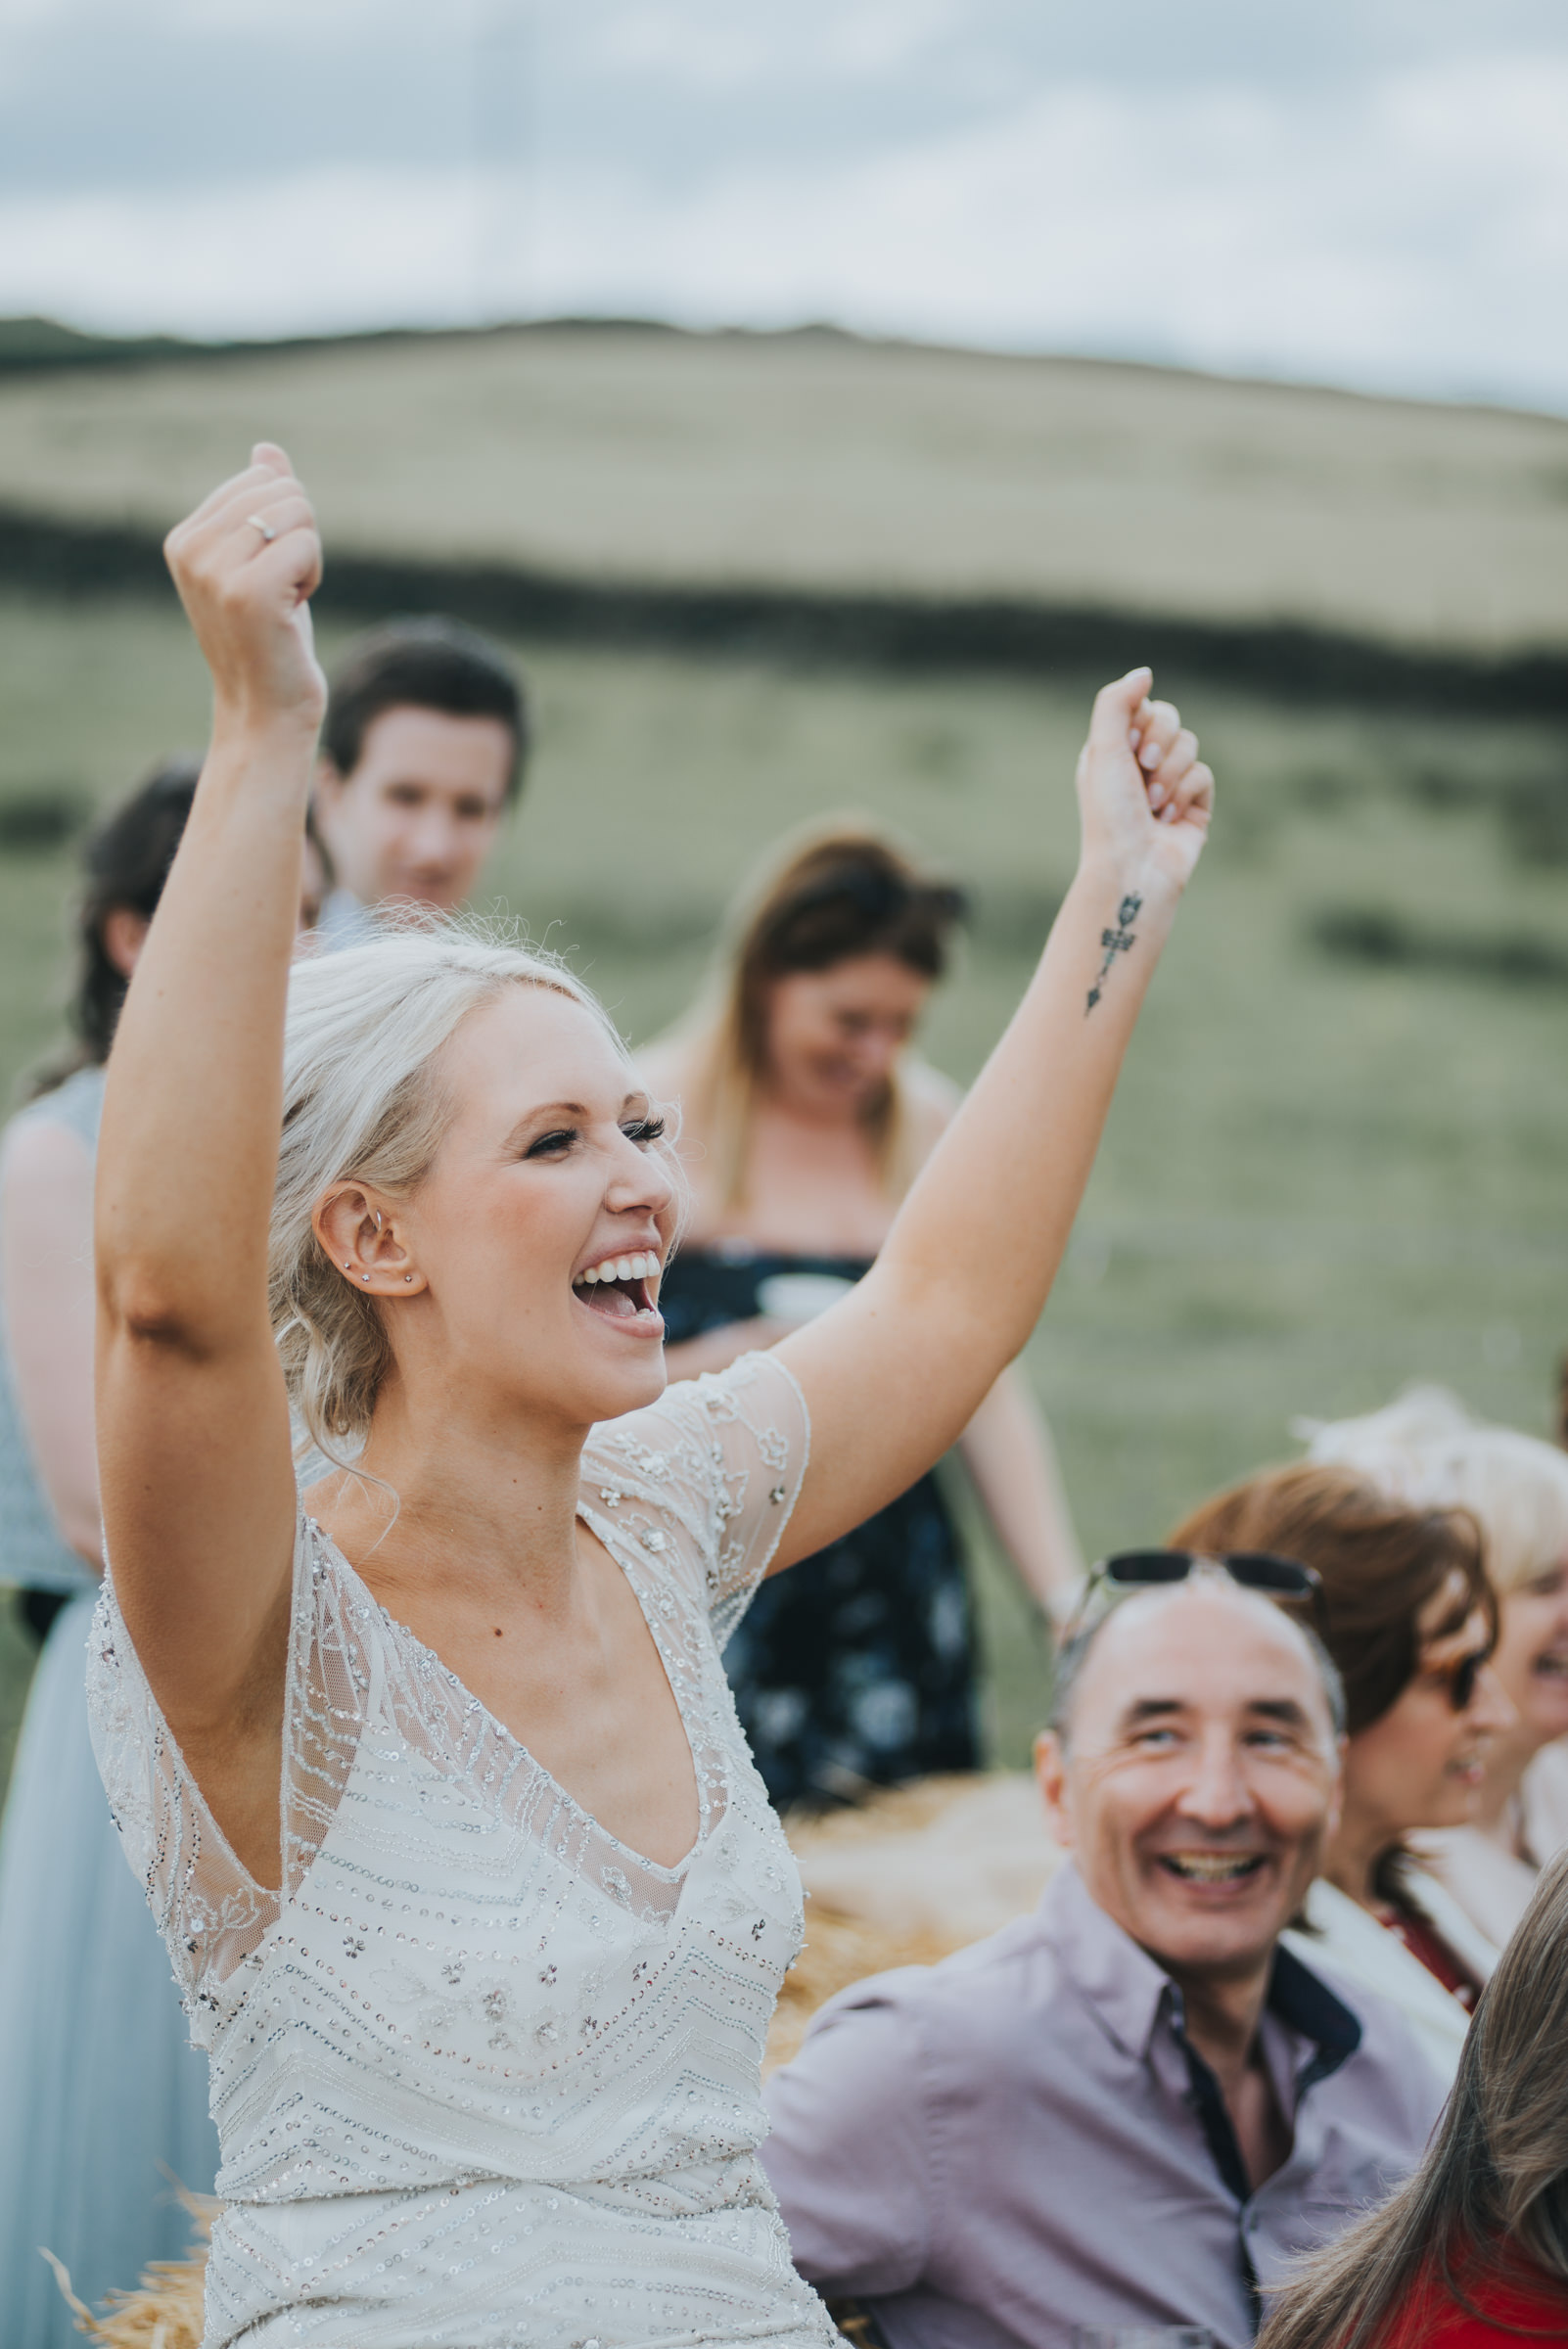 speeches outdoors at weddings